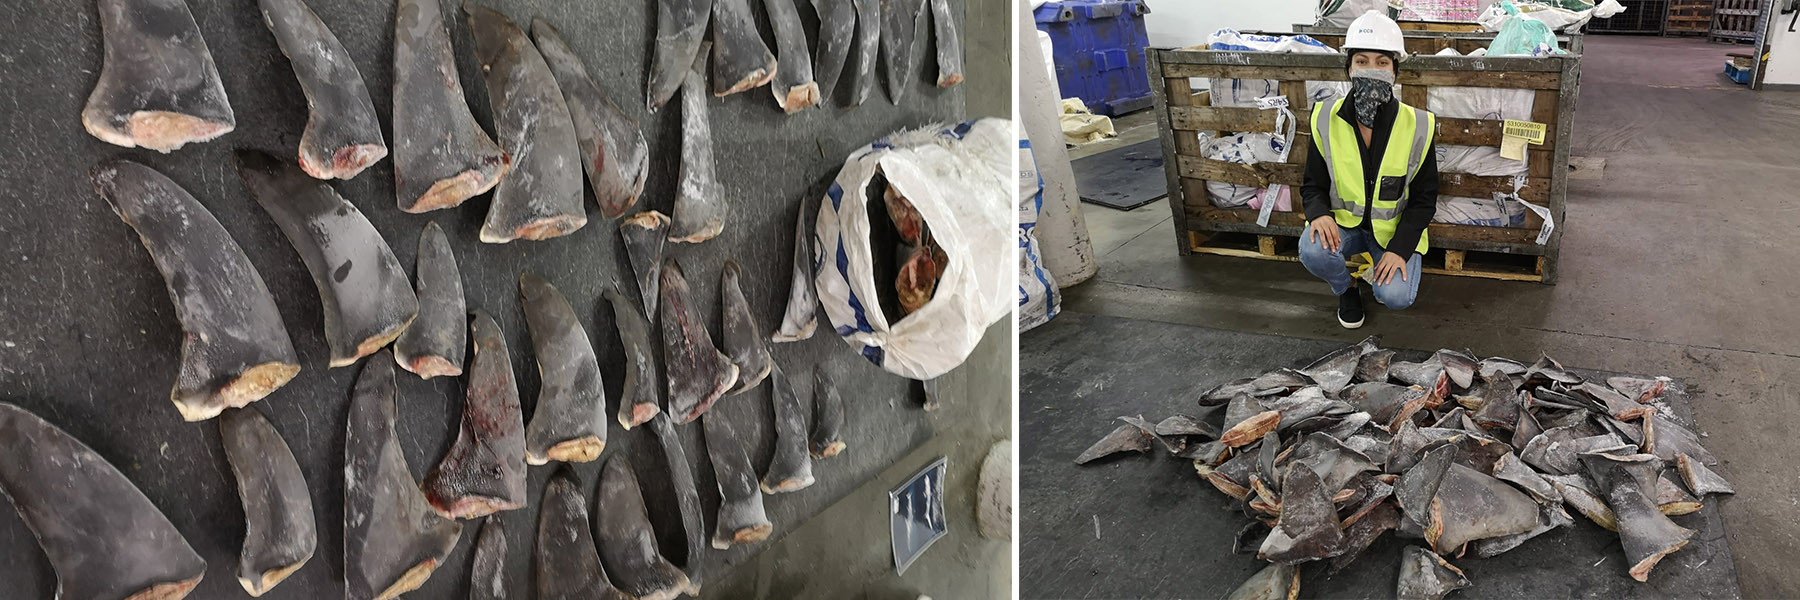 Simone Louw, TRAFFIC's Project Officer in Cape Town inspects a shark fin seizure concerning CITES-listed species. Photo via Markus Bürgener/TRAFFIC.